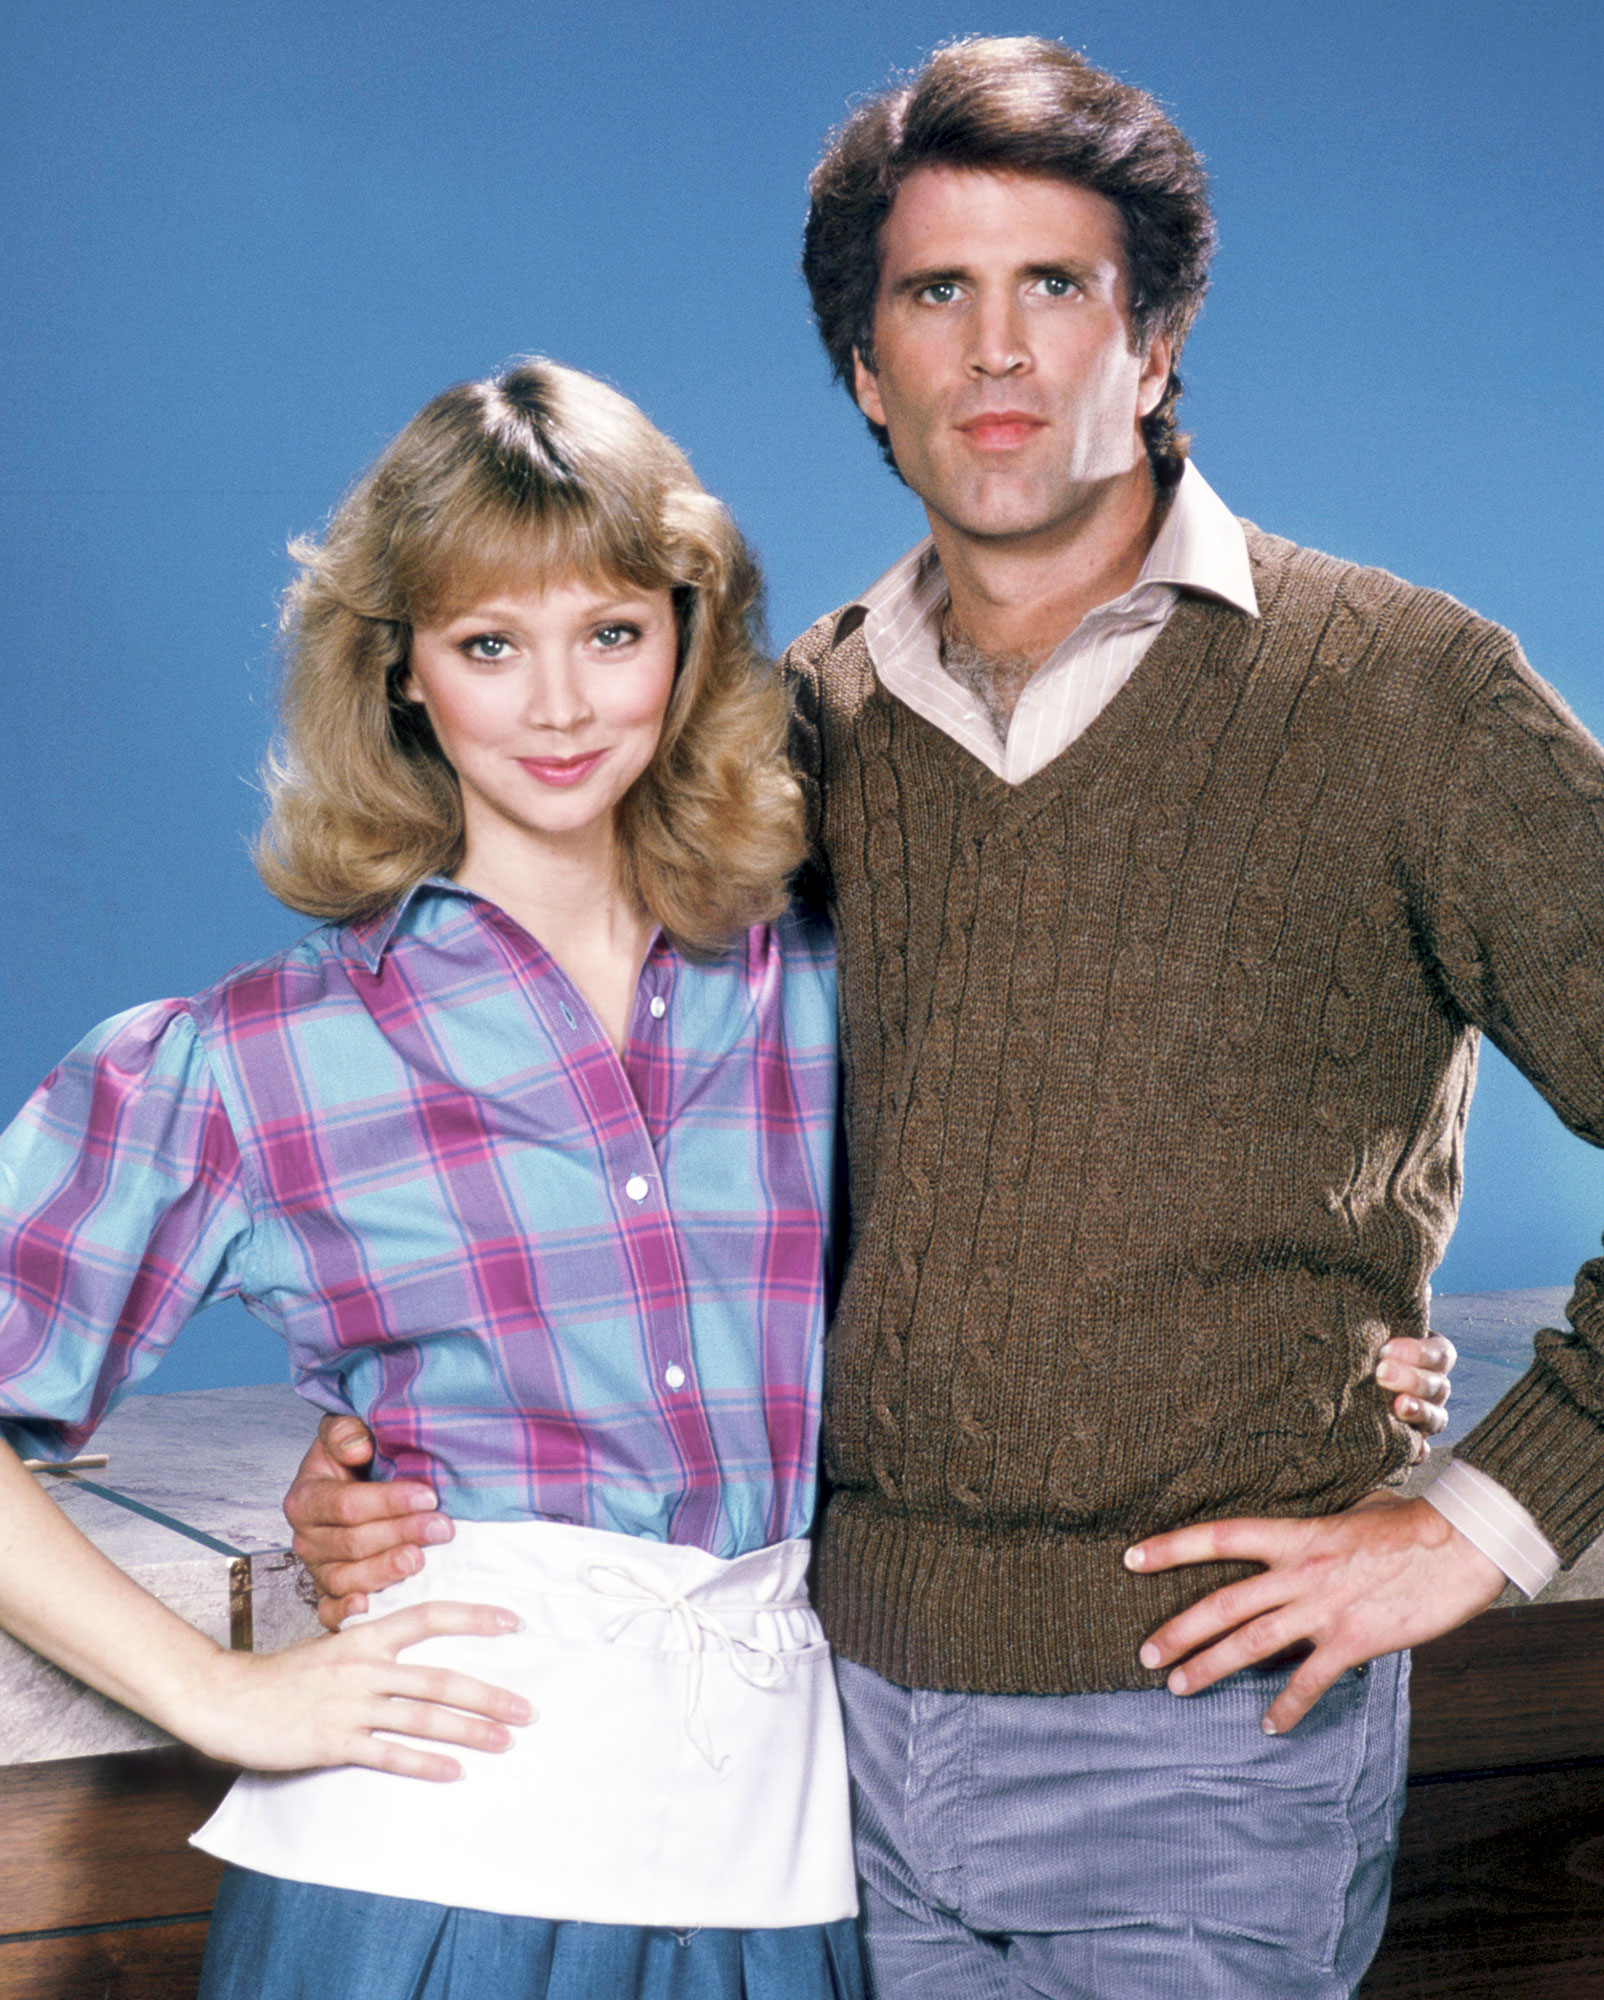 Best TV Couples Cheers Shelley Long Ted Danson - Show: Cheers Actors: Shelley Long and Ted Danson Network: NBC Seasons: 11